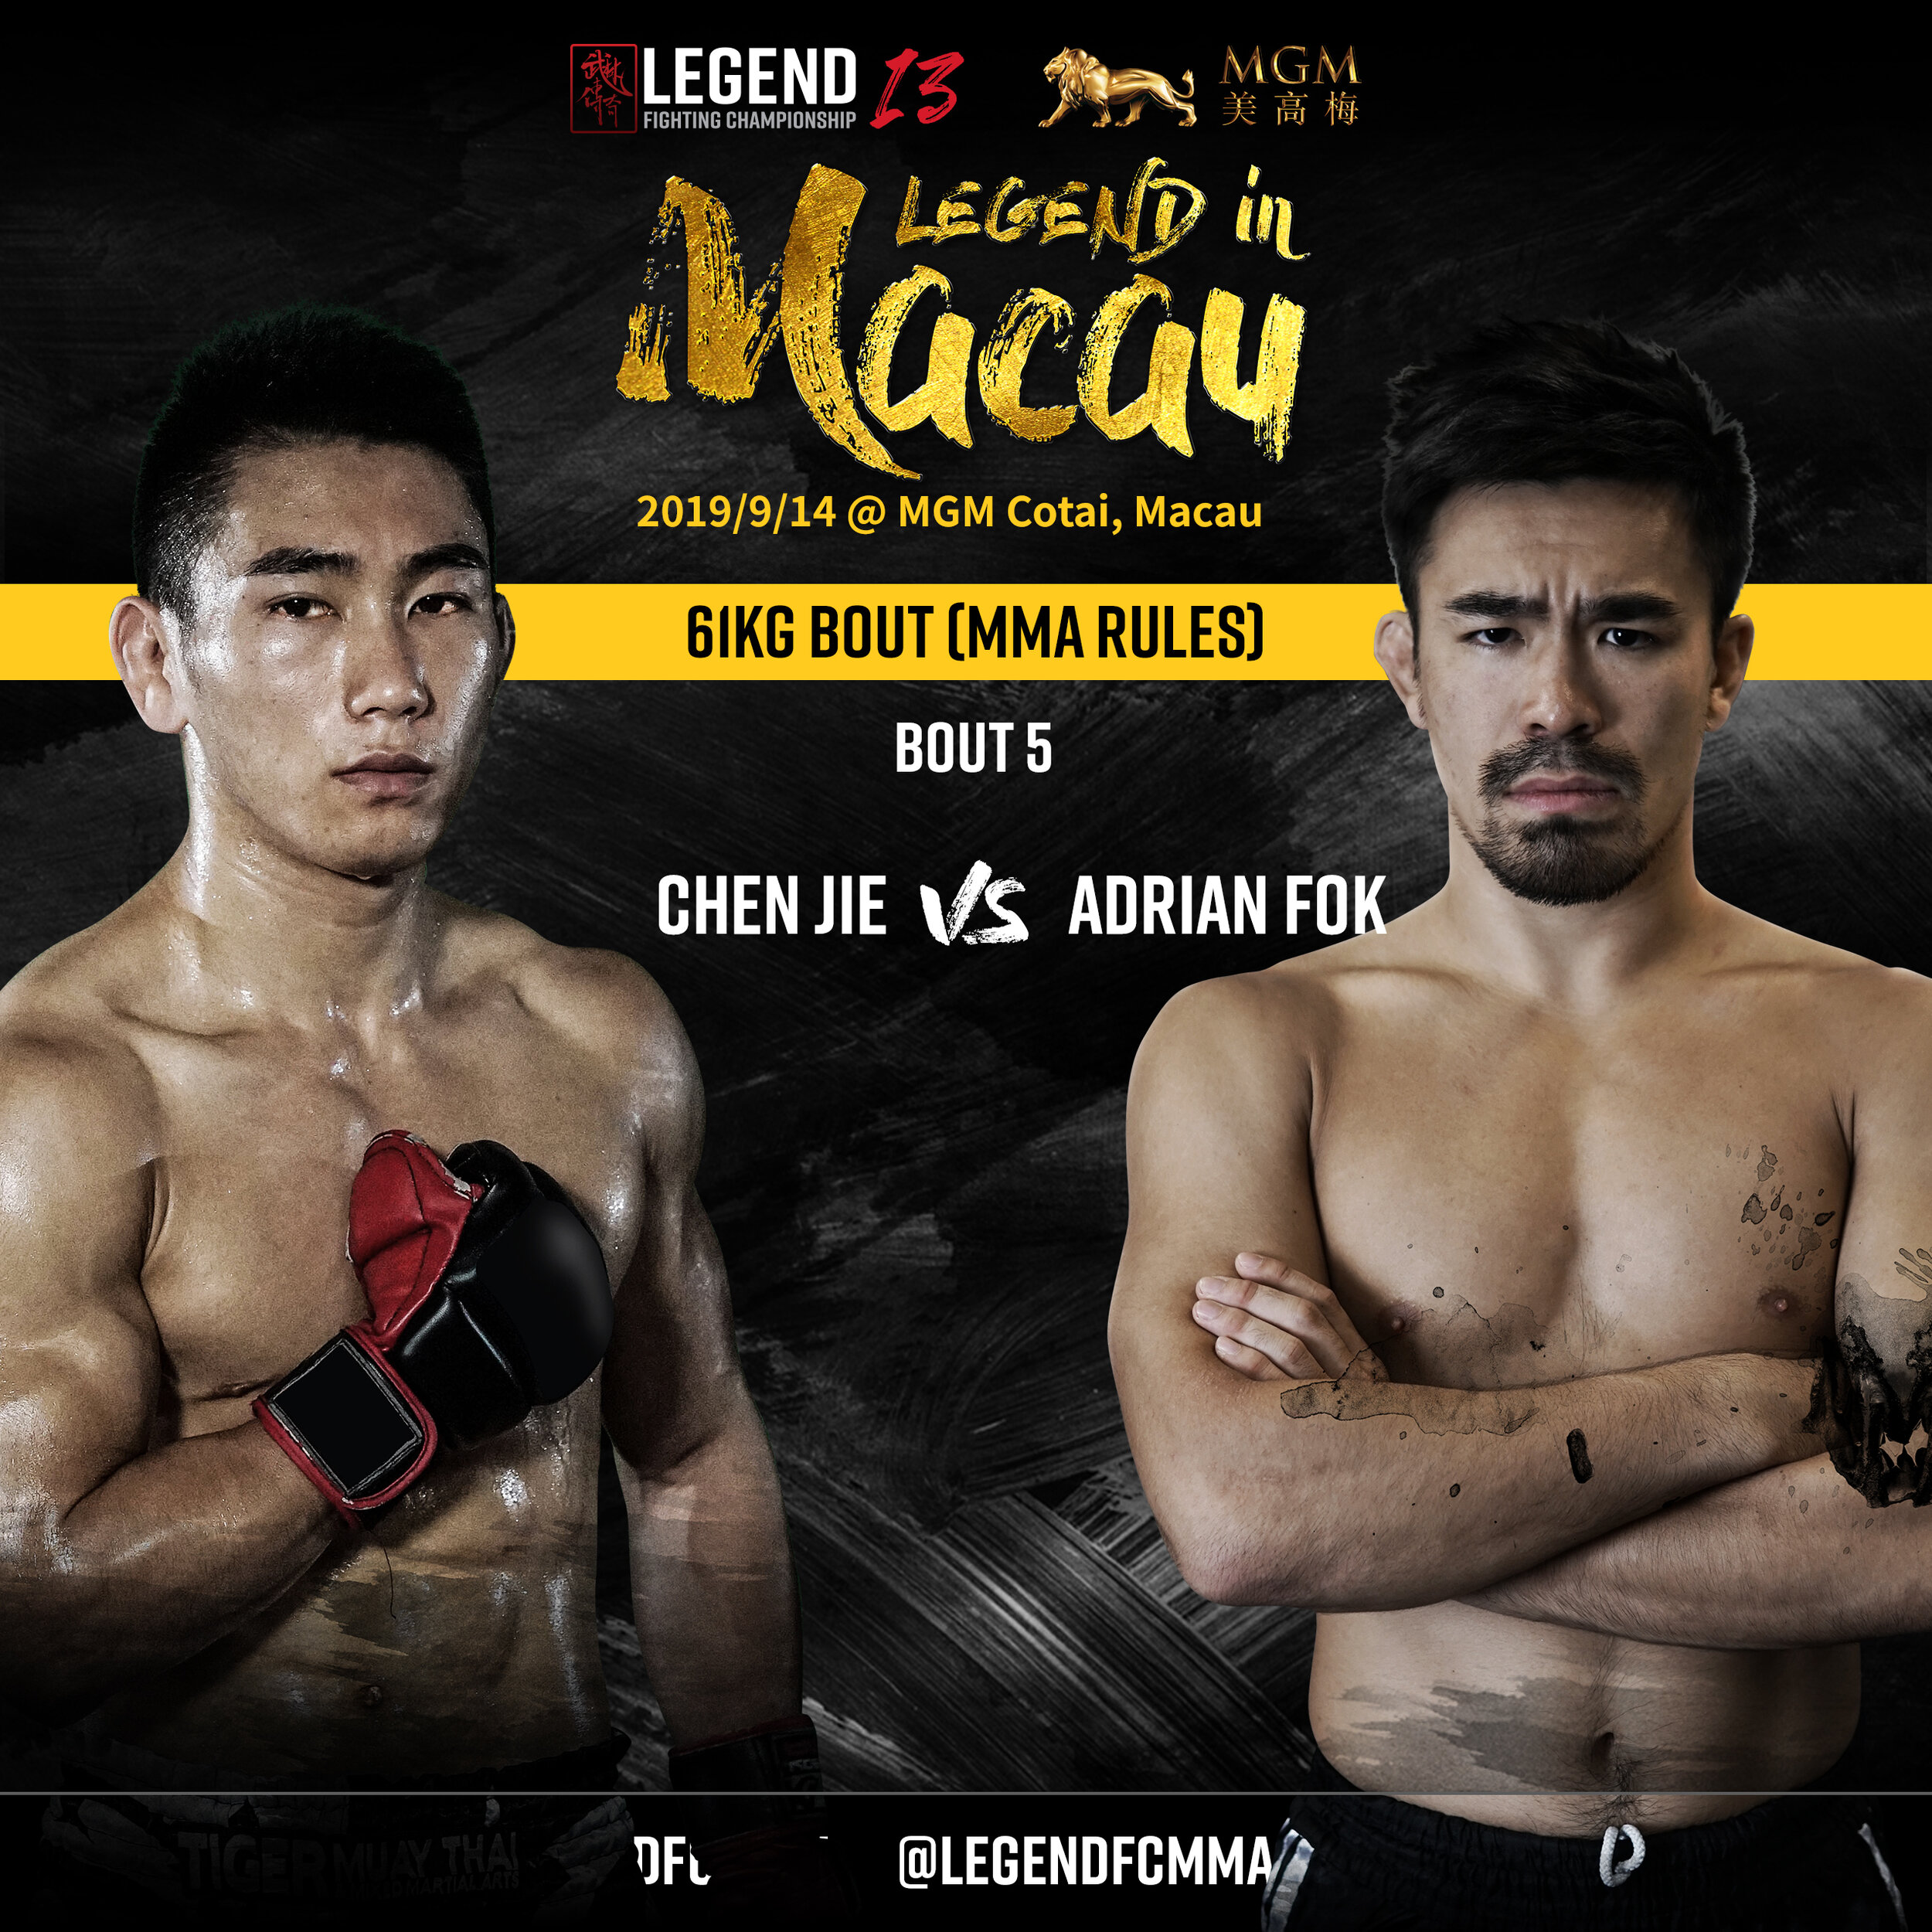 Chen Jie VS Adrian Fok   The 28-year-old Fok steps into the Legend FC 'Bafang' for the first time to face Chinese grappling sensation Chen Jie inside the prestigious MGM Theater. Hailing out of Crocodile Fight Club in Chongqing, Chen brings a solid BJJ background and will have a slight advantage in the striking department. This was evident when he competed in the Bantamweight Tournament at Legend FC 12 last year, making his way through to the final.